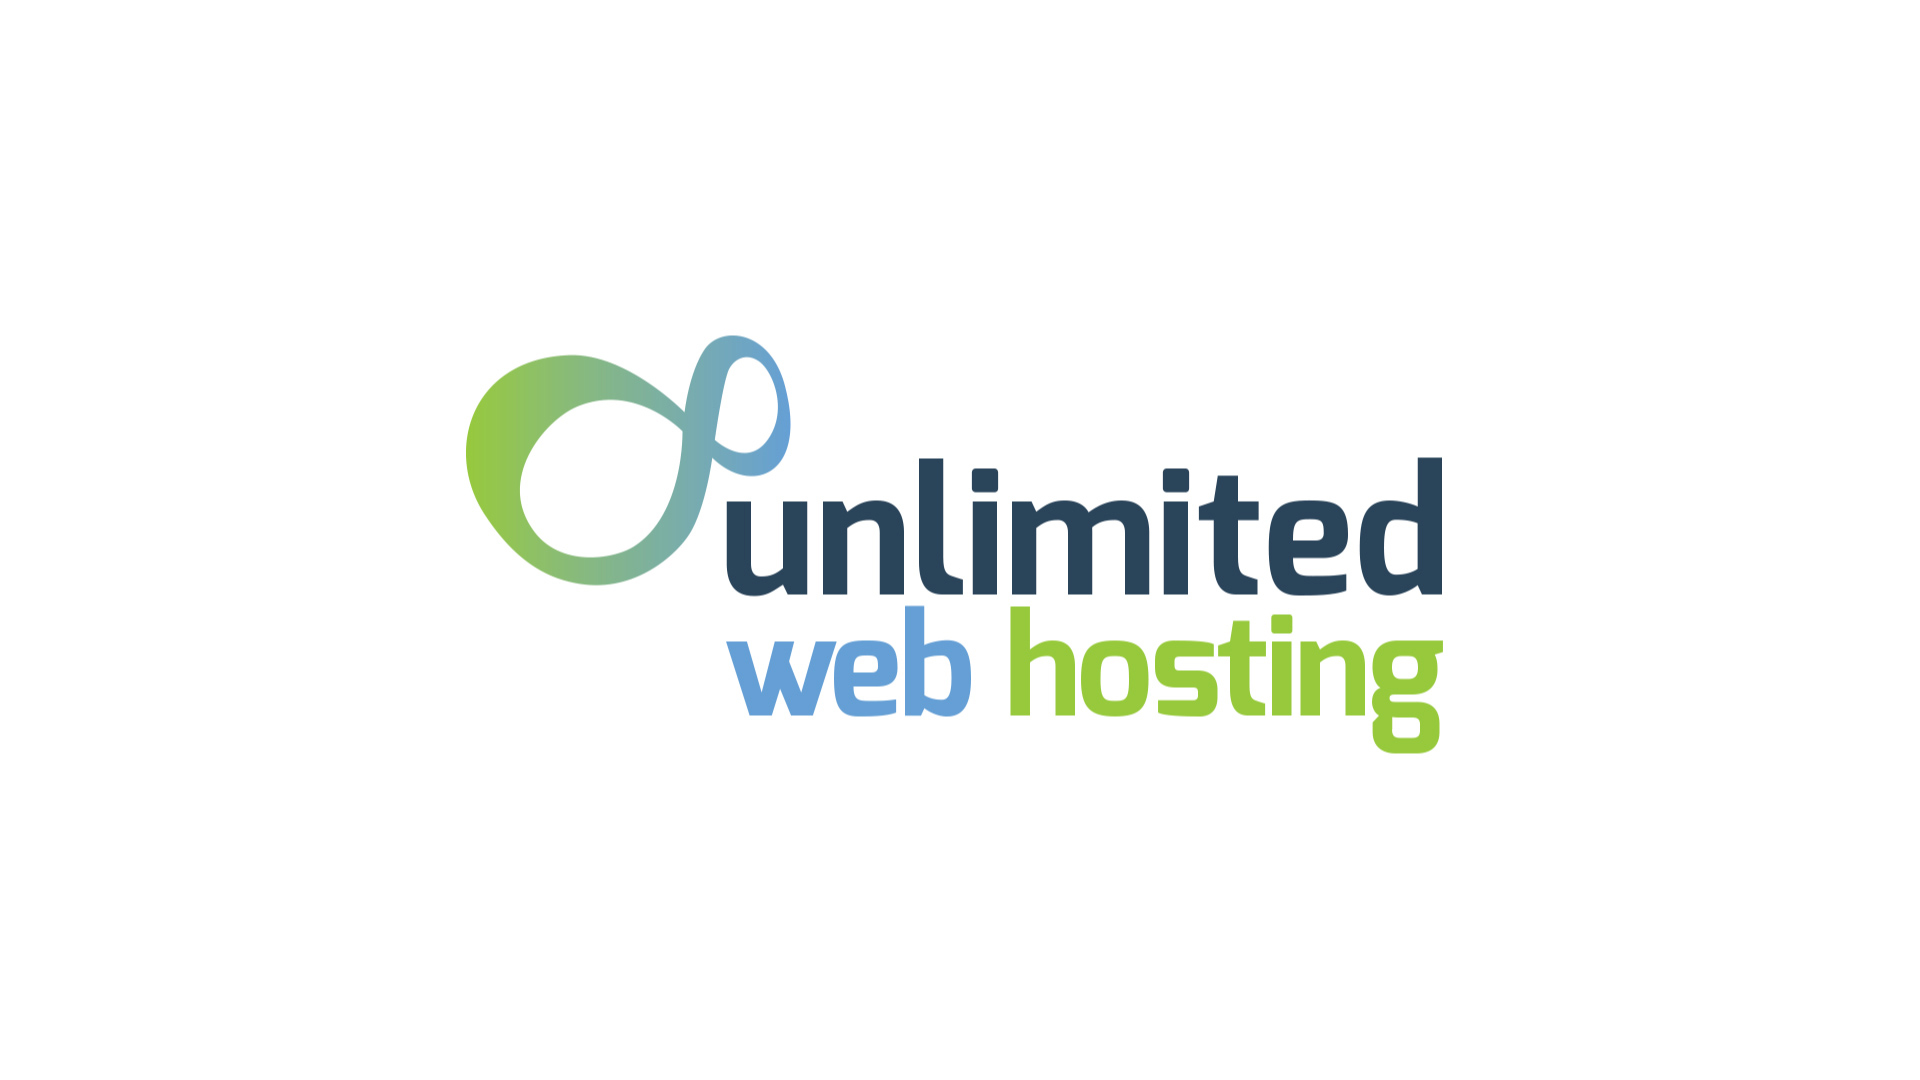 Large Unlimited Web Hosting logo banner